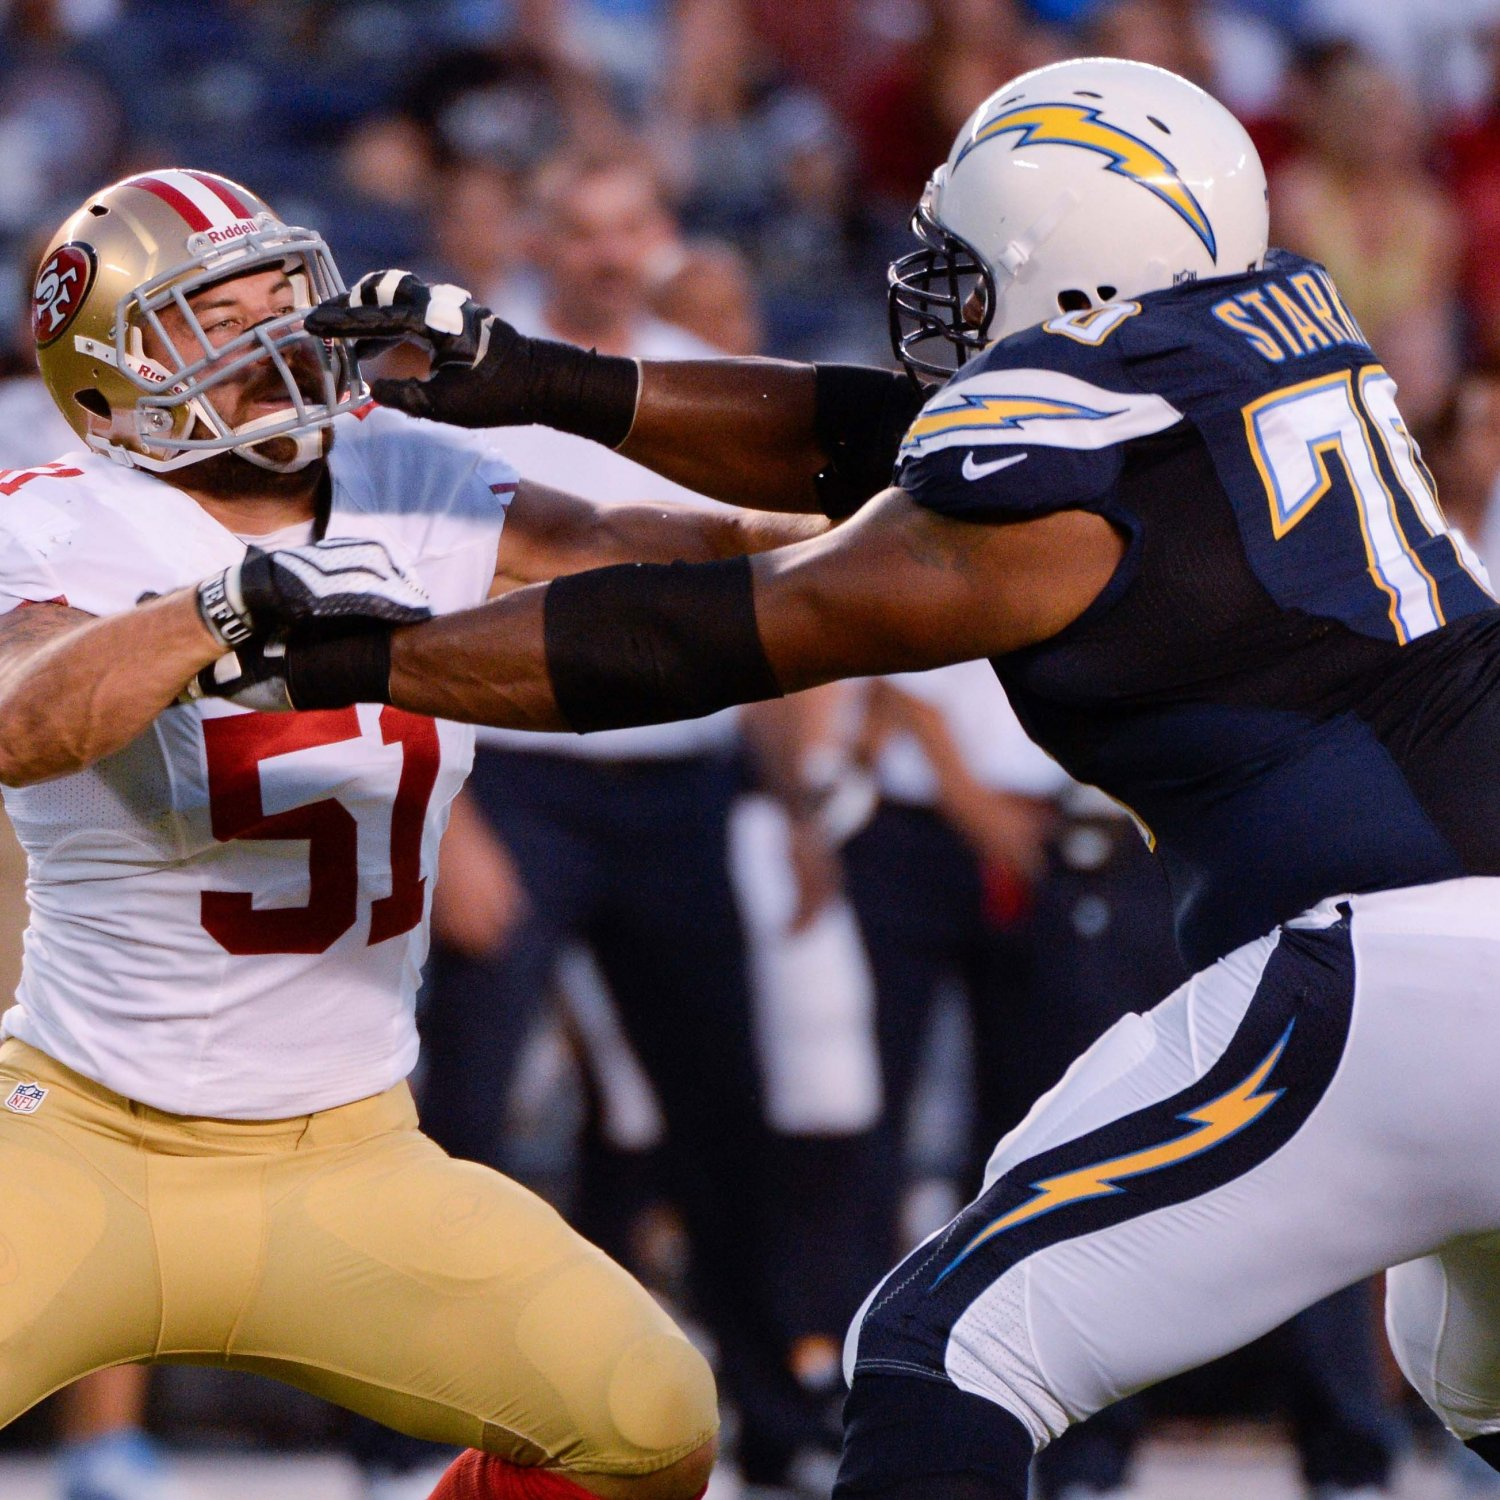 San Diego Chargers Game Results: San Diego Chargers Vs. San Francisco 49ers: 49ers